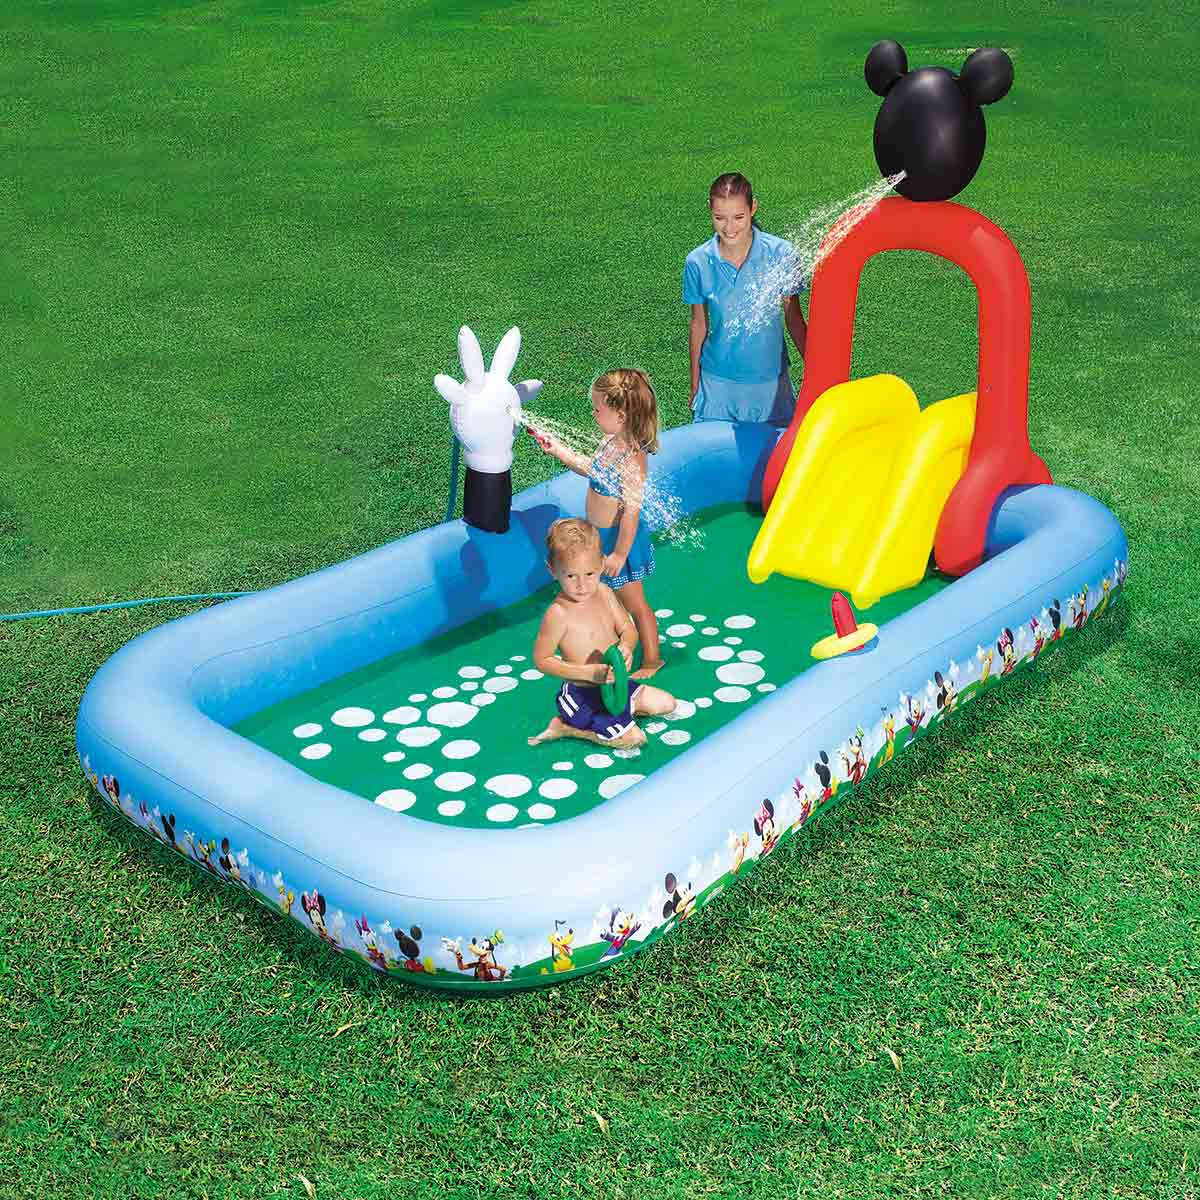 Bestway Inflatable Pool For Children With Slide The House Of Mickey-91016